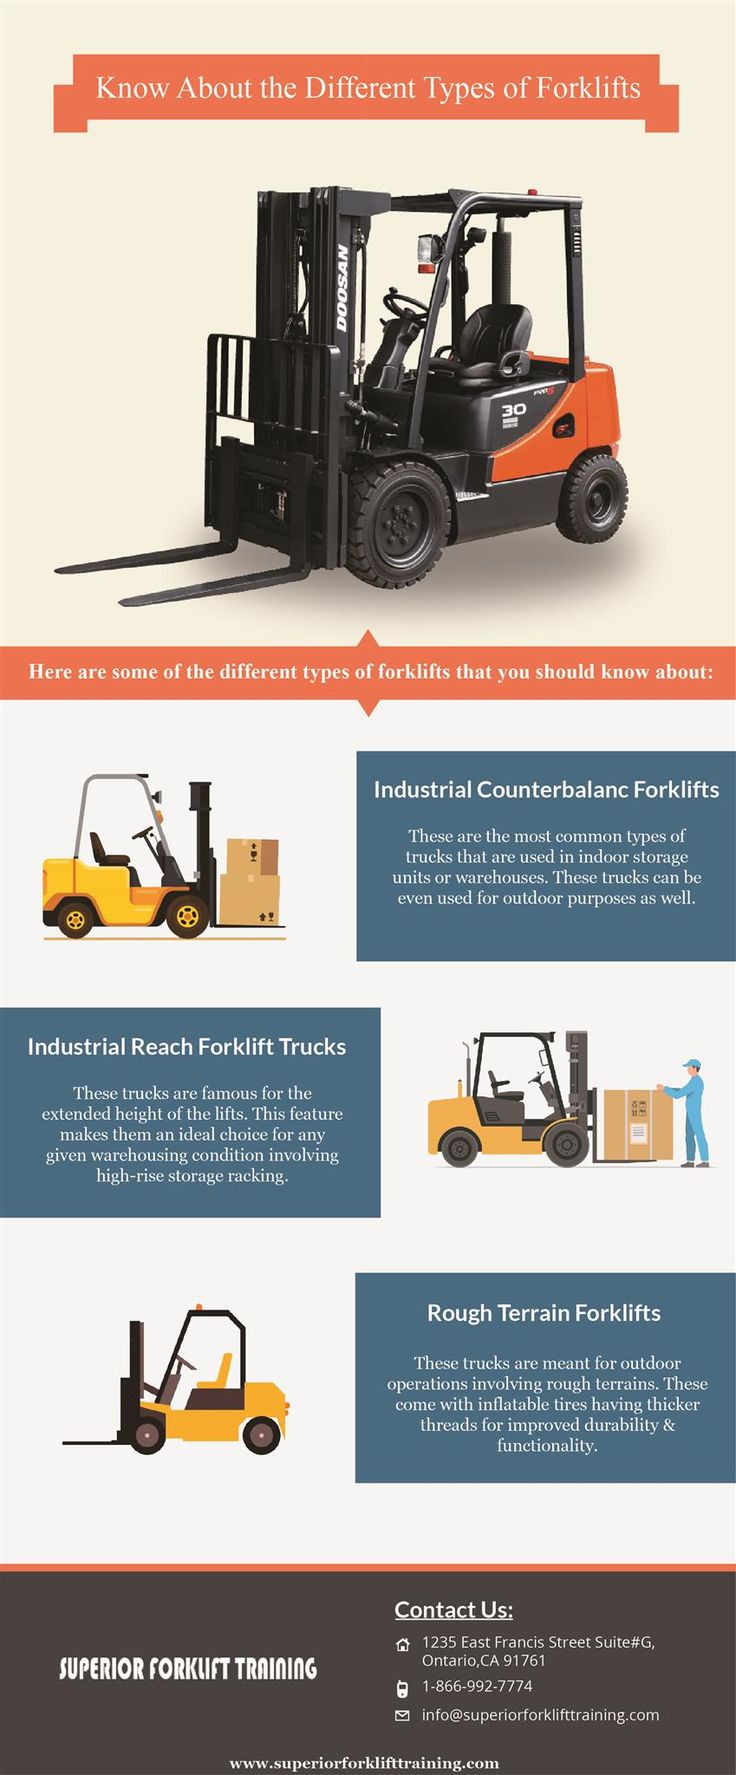 Do you wish to apply for the OSHA forklift safety training